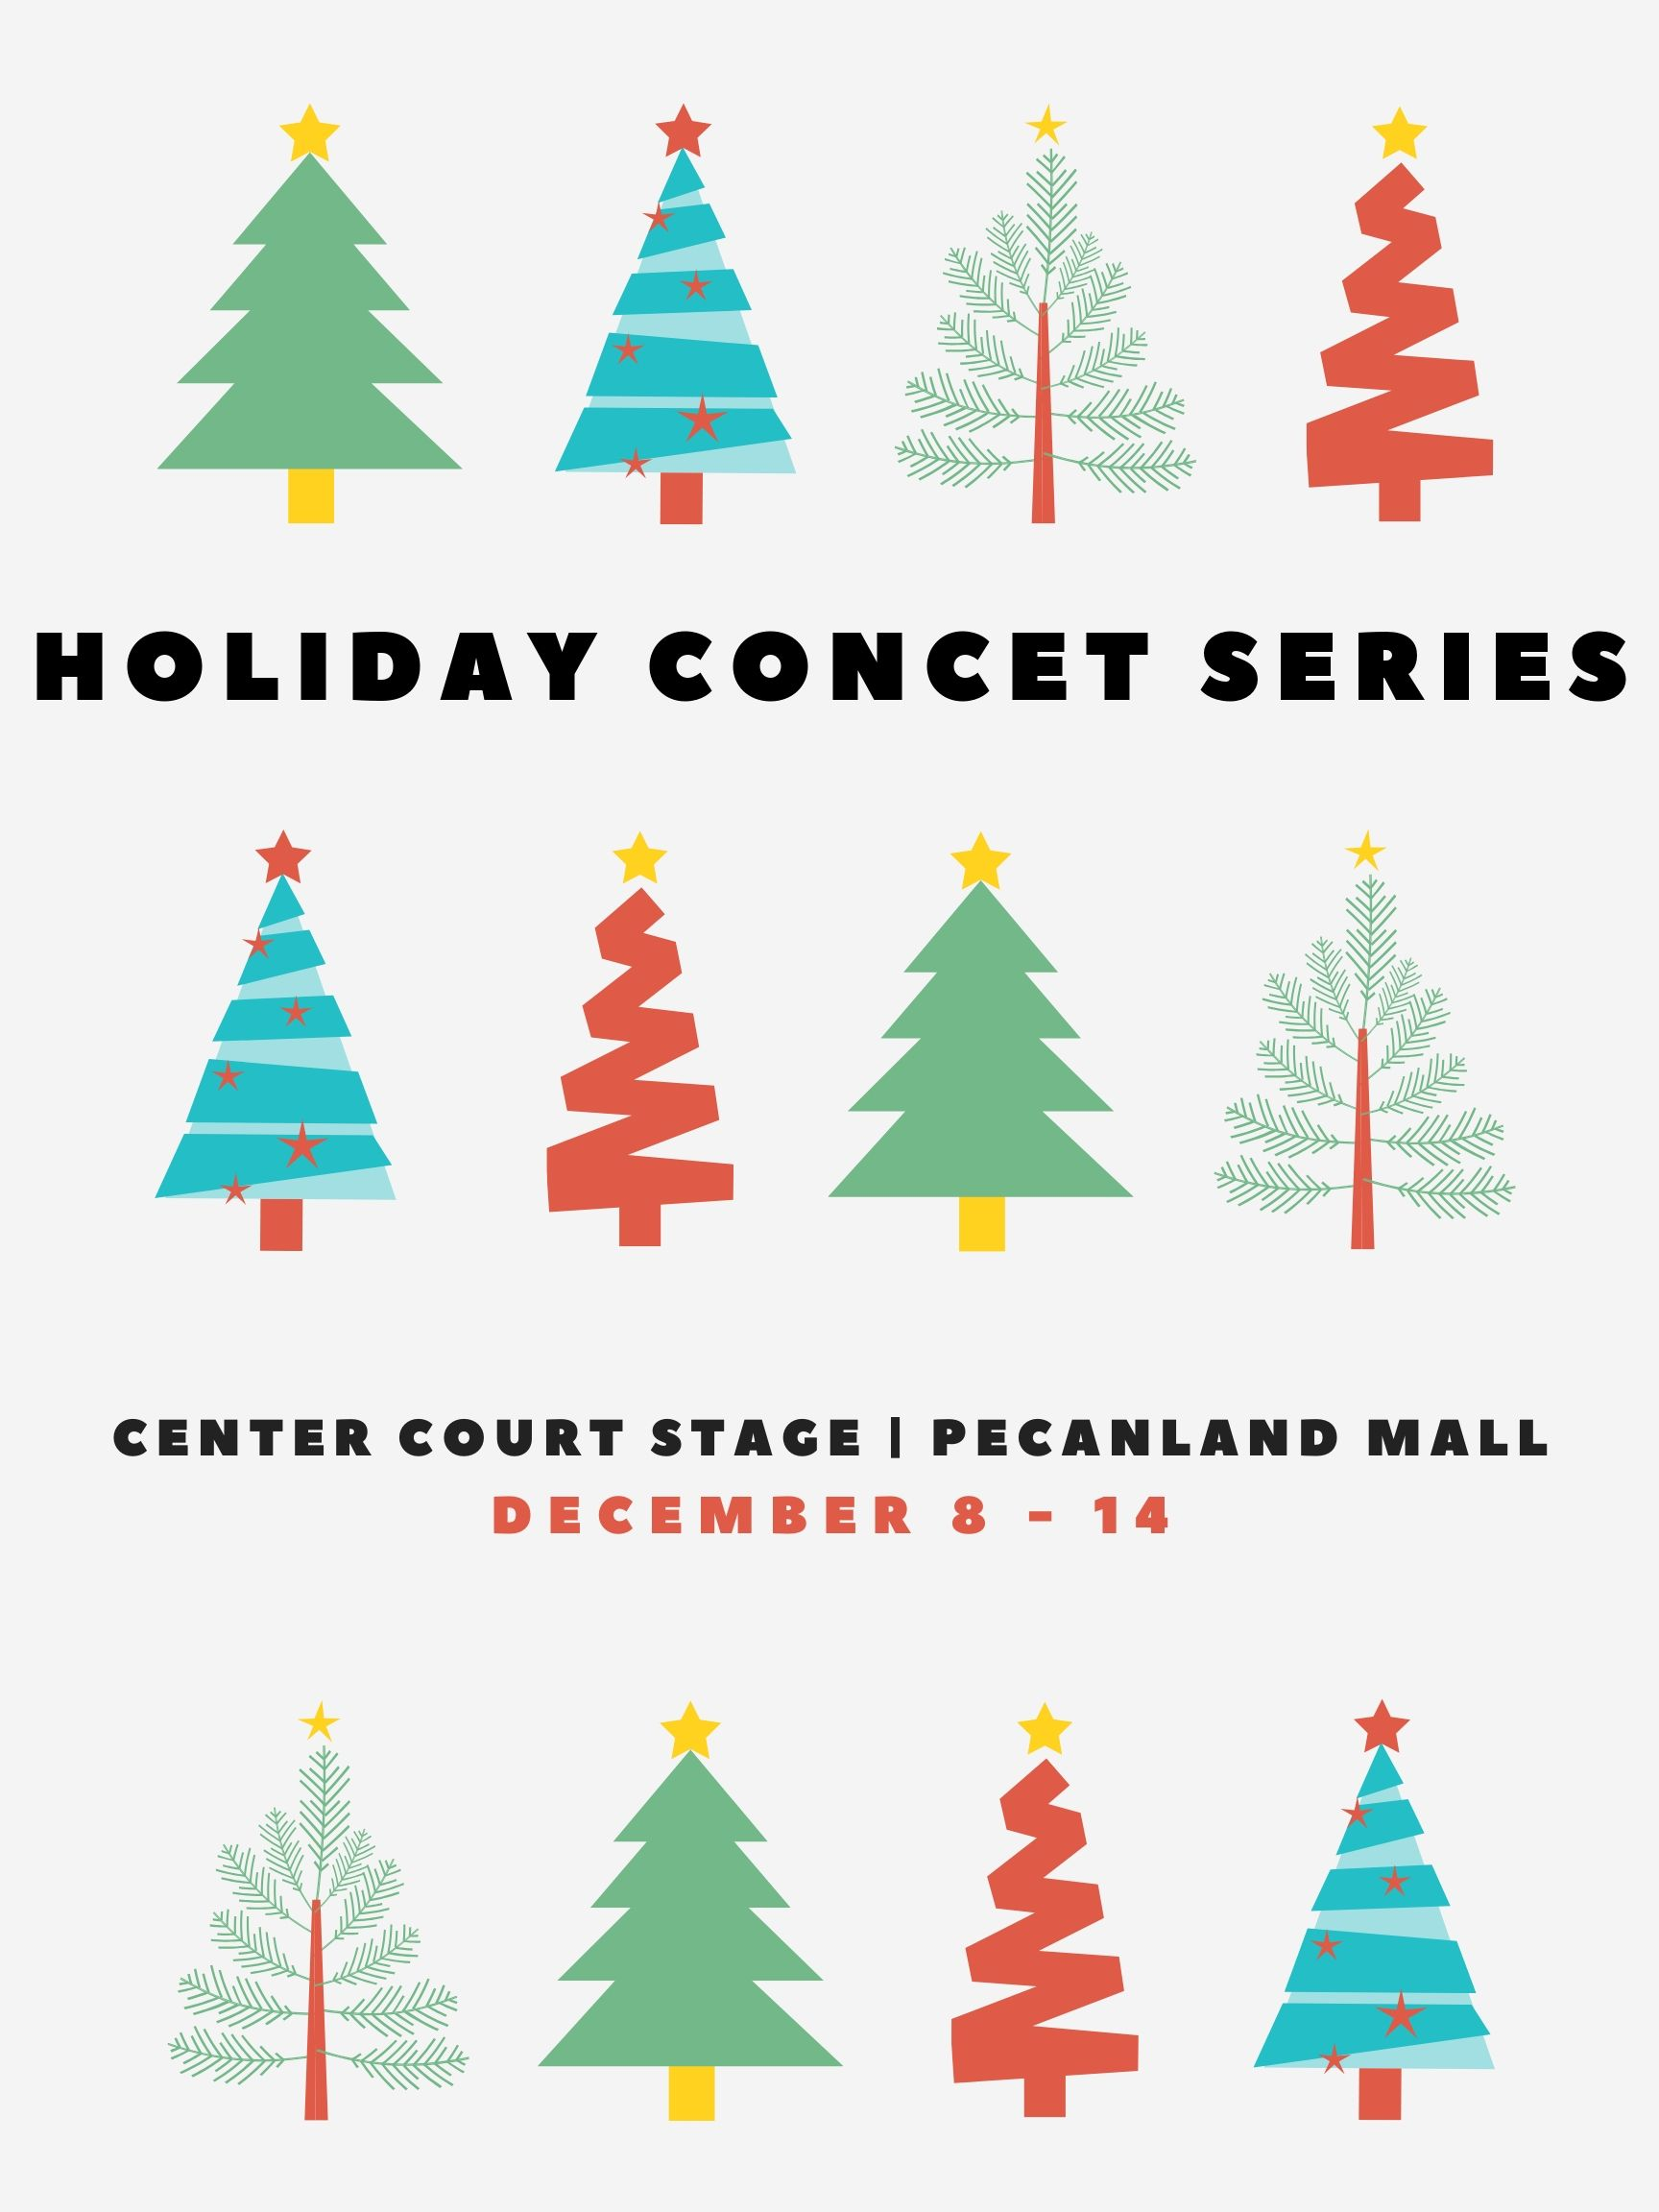 Pecanland Mall's Holiday Concert Series